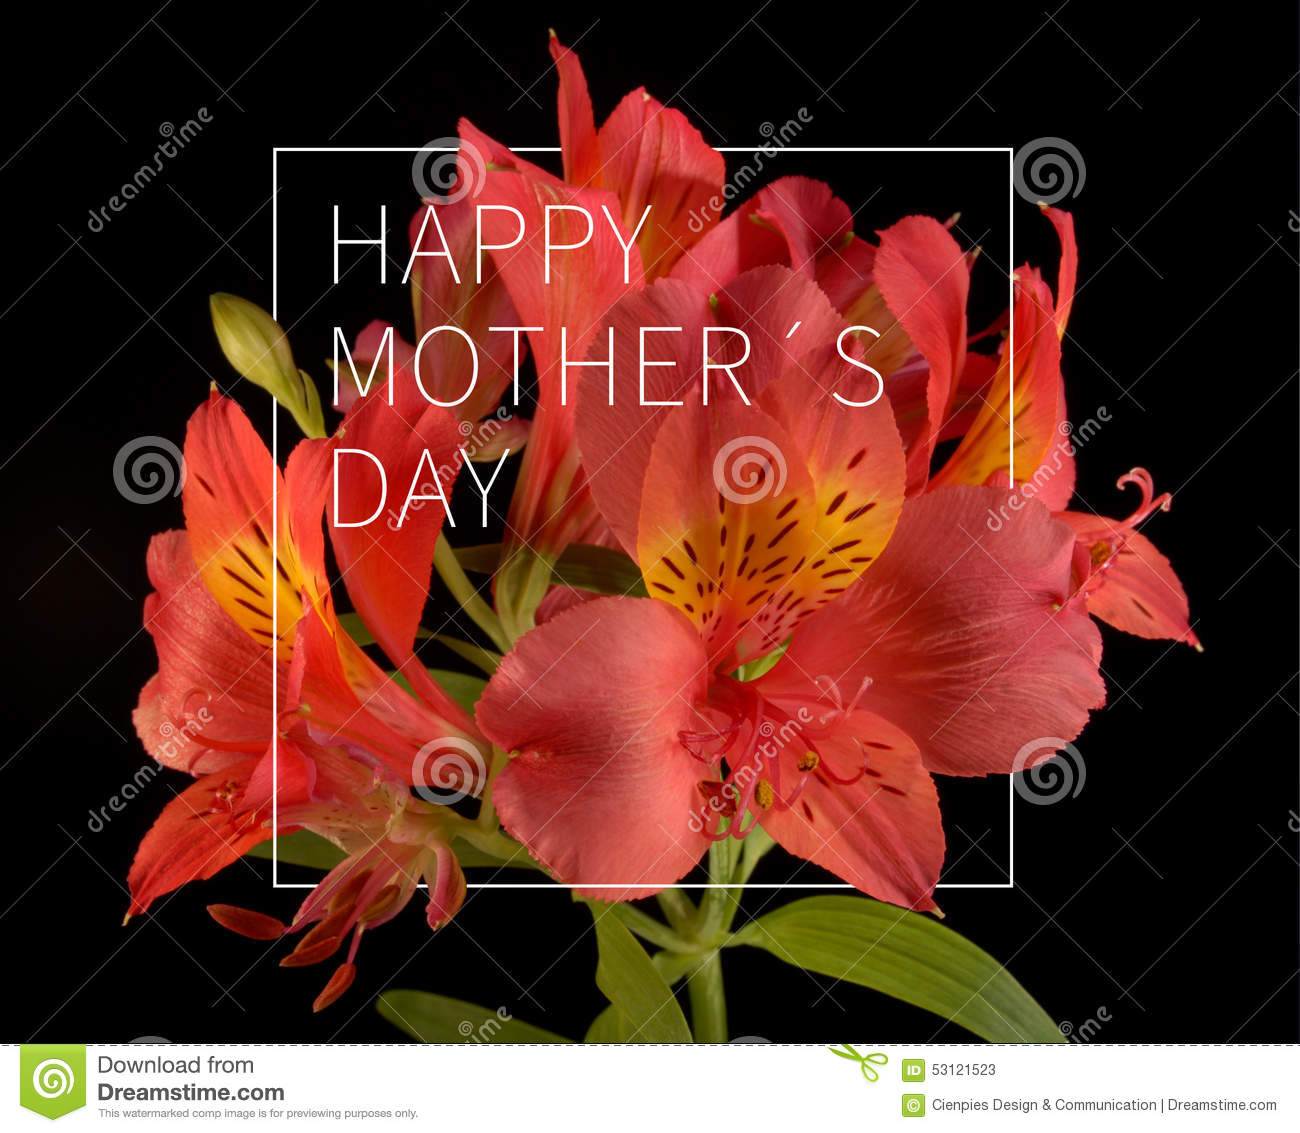 Happy mothers day flower background stock photo image for Classy mothers day cards